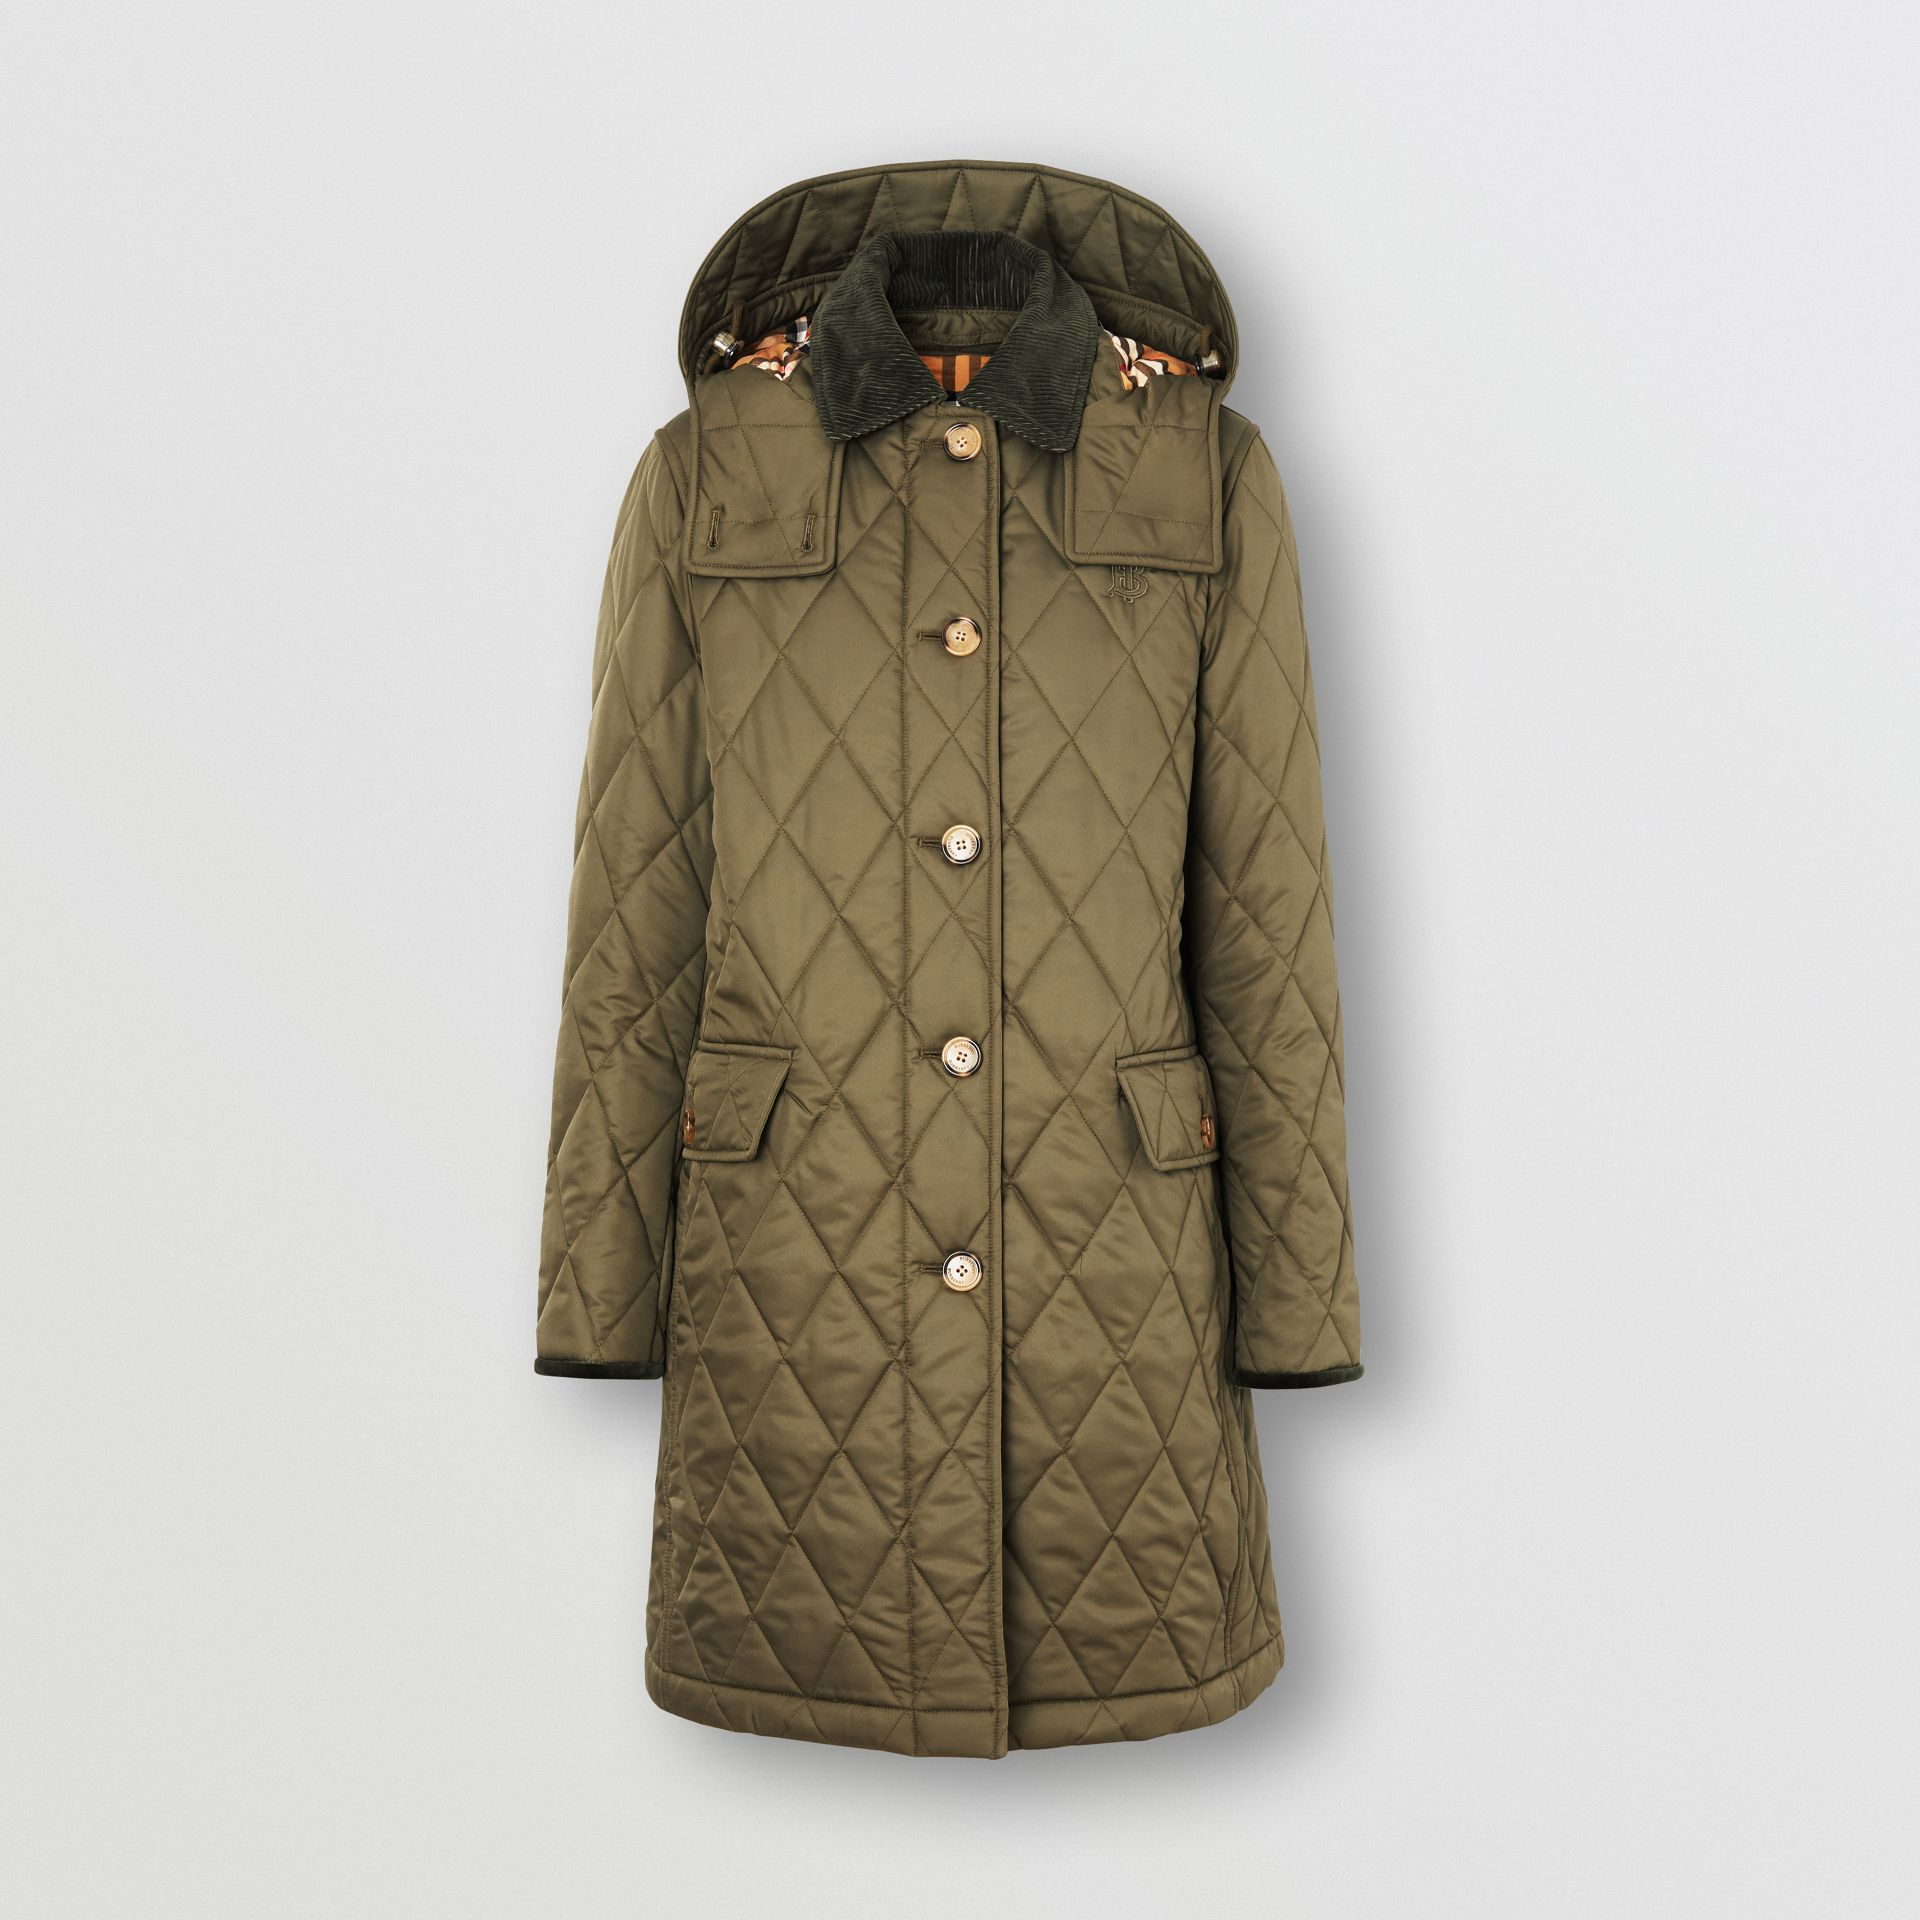 Detachable Hood Monogram Motif Quilted Coat in Olive Green - Women | Burberry - gallery image 3